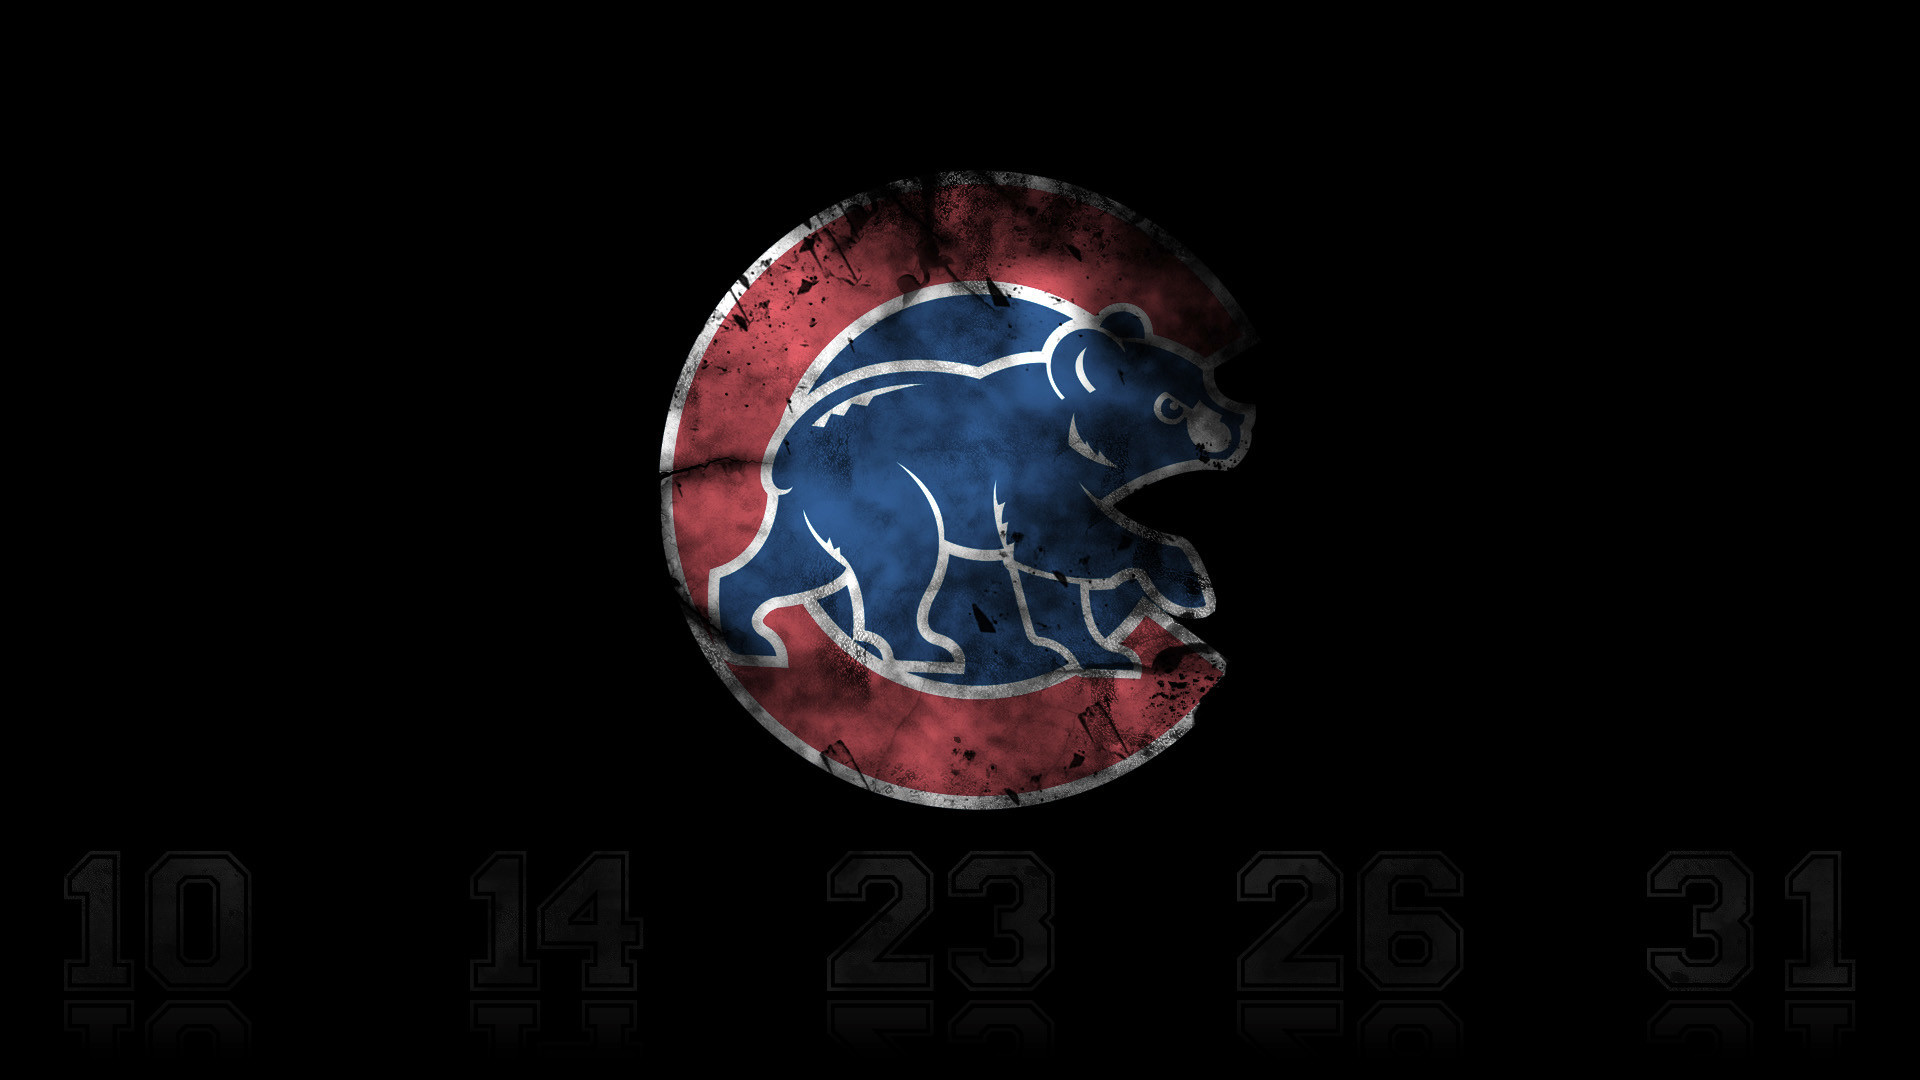 1920x1080 chicago bears macbook wallpapers hd 2048x1280 · Chicago Cubs wallpaper |  Cub News | Pinterest | Chicago